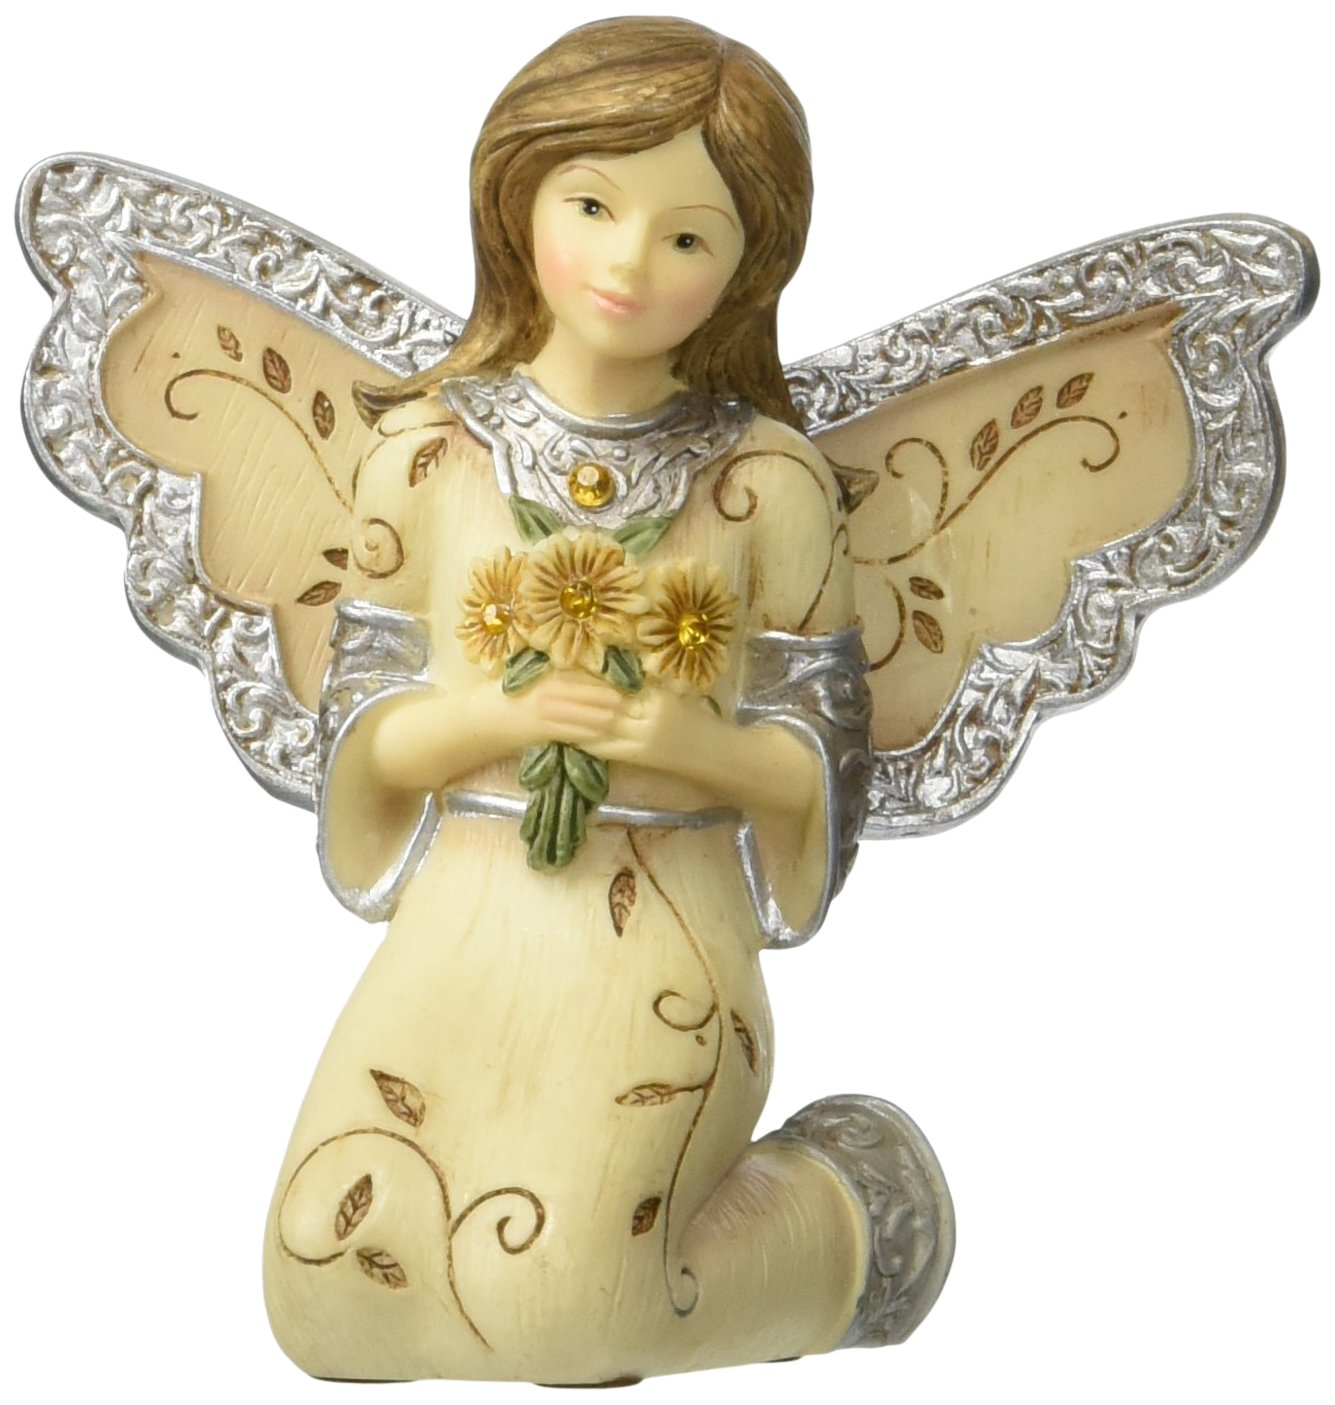 Elements November Monthly Angel Figurine, Includes Yellow Topaz Birthstone, 3-Inch